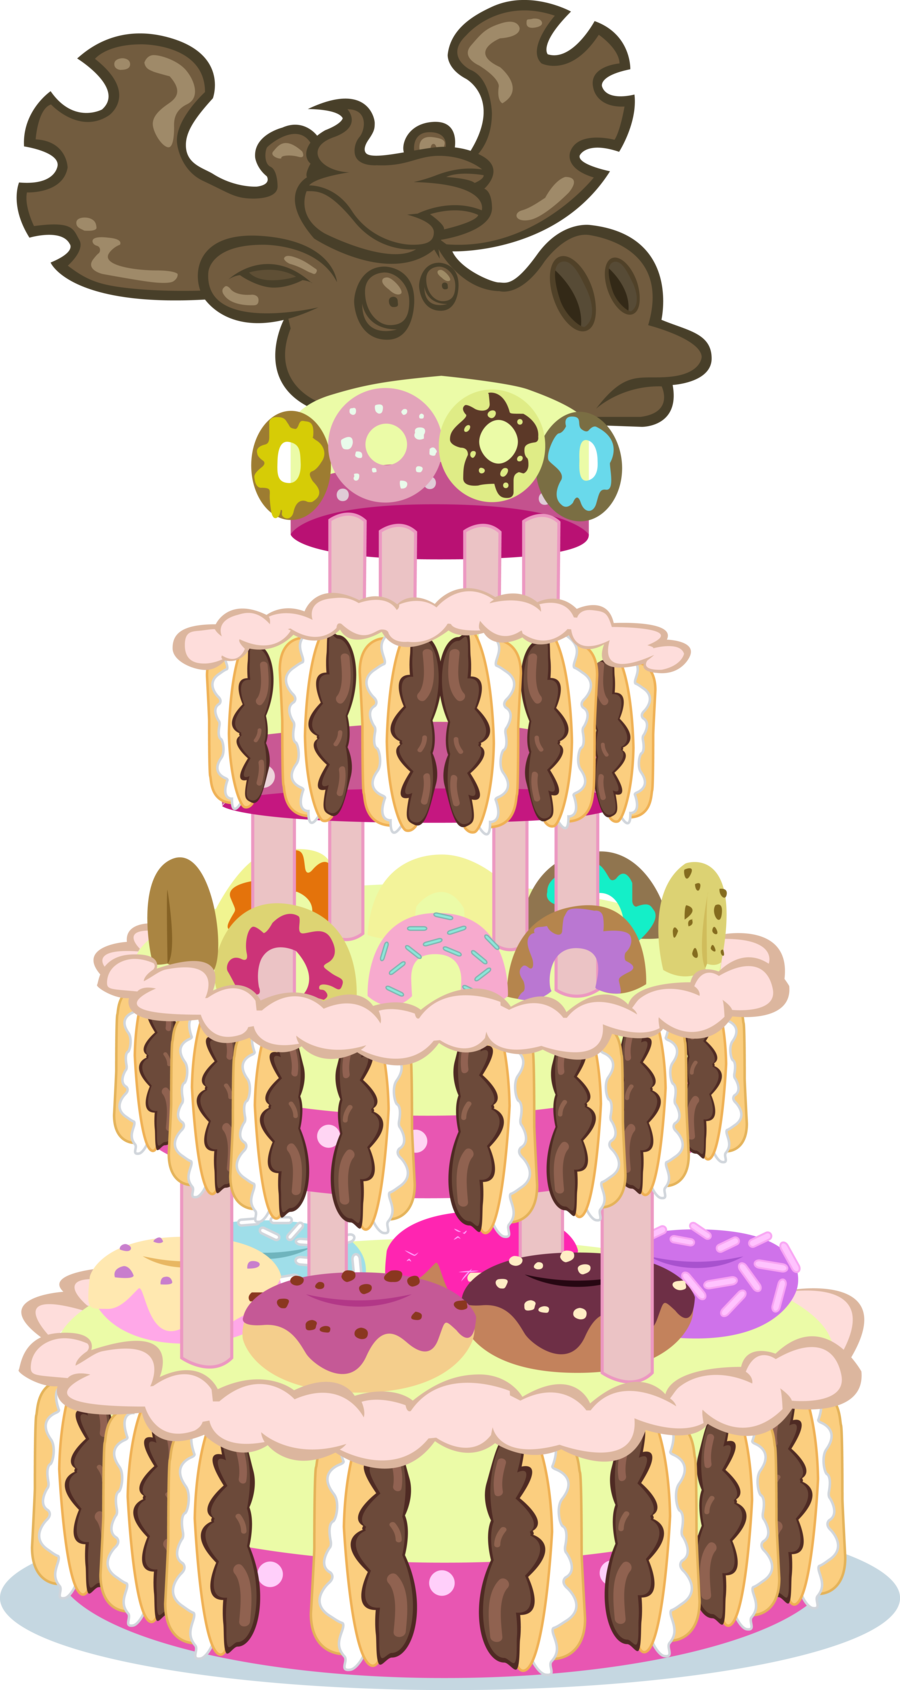 Clipart cake retro. This is what the